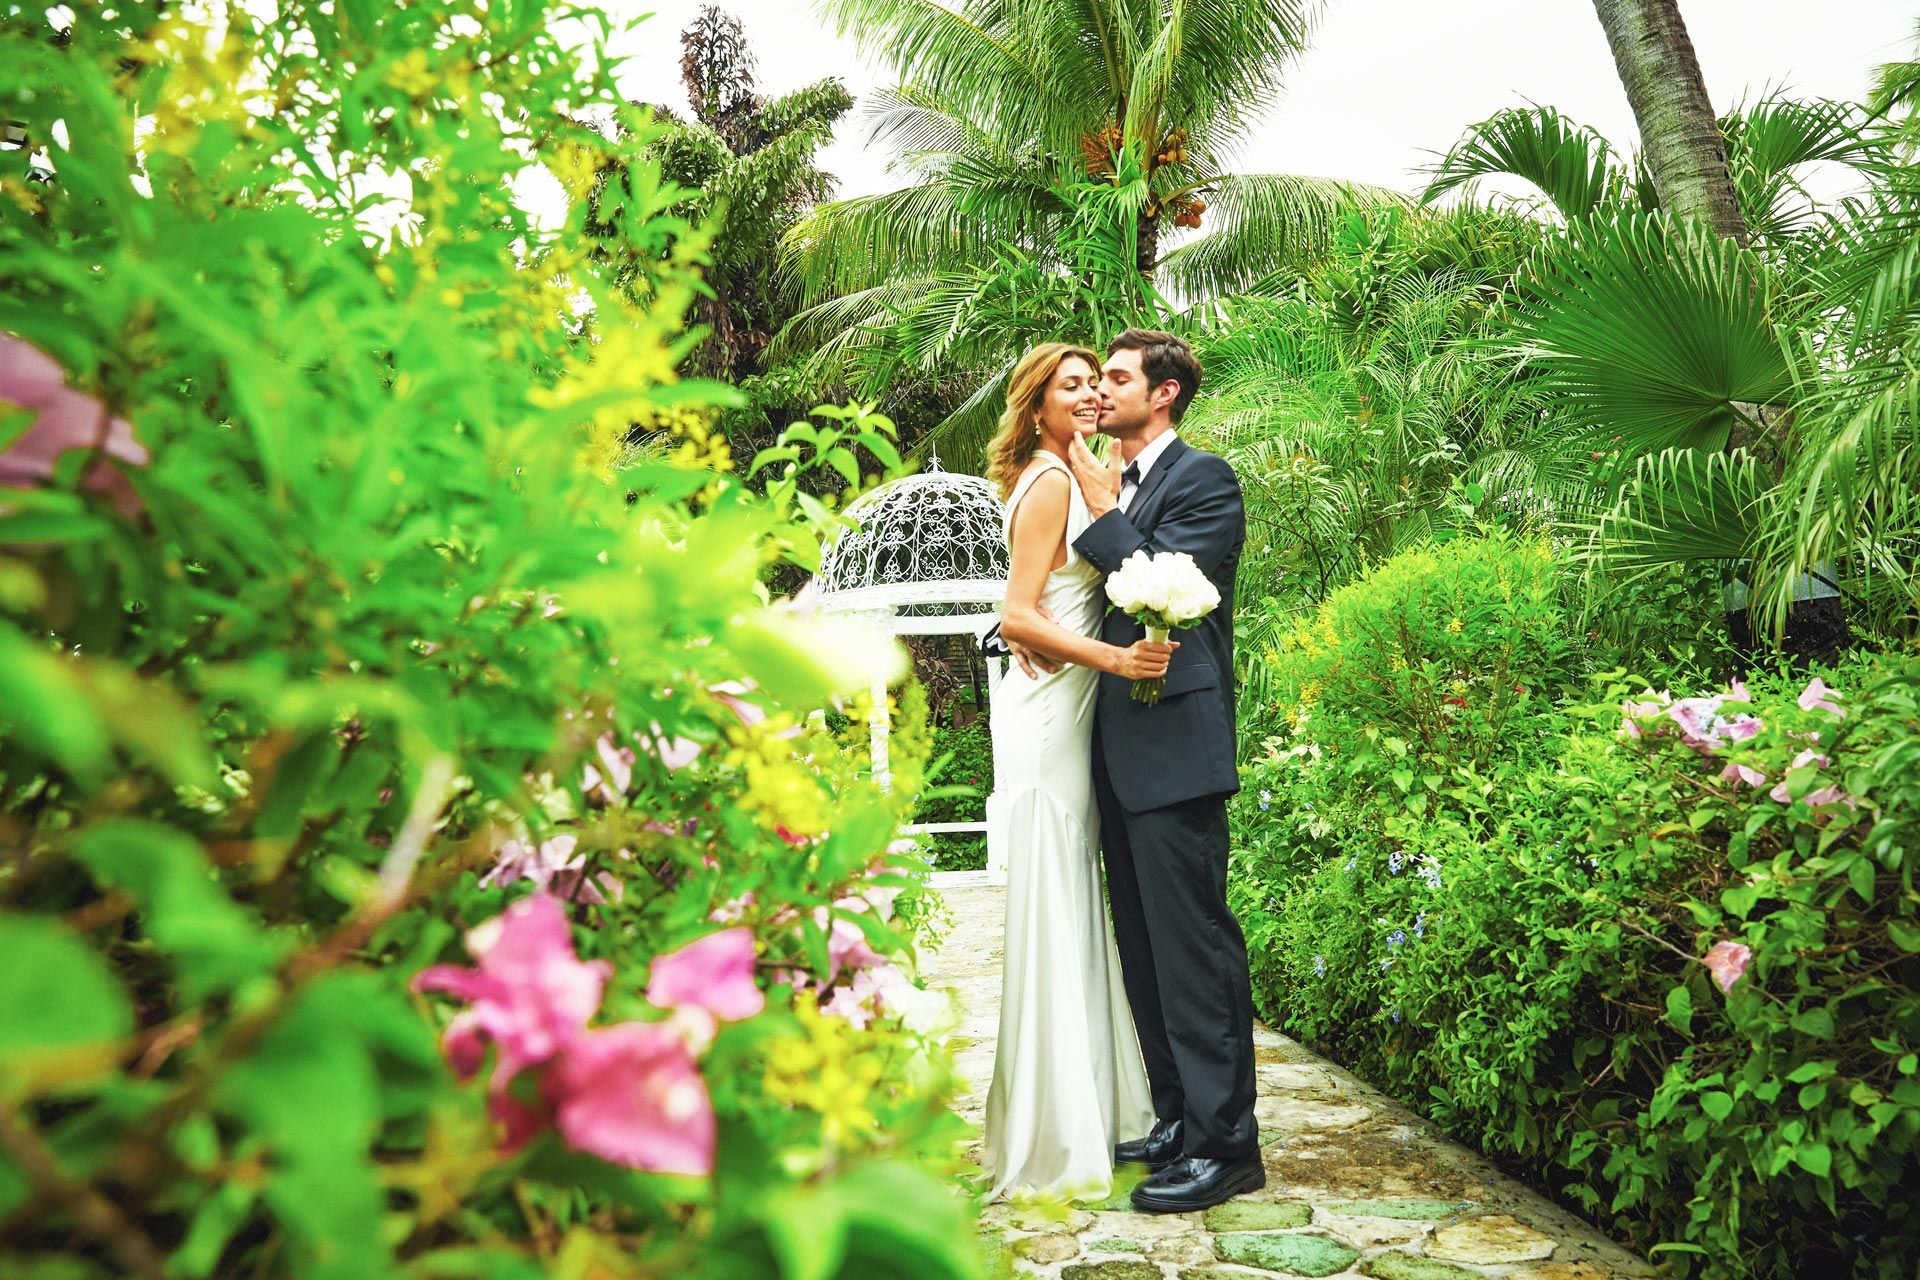 Wedding couple in gardens kissing